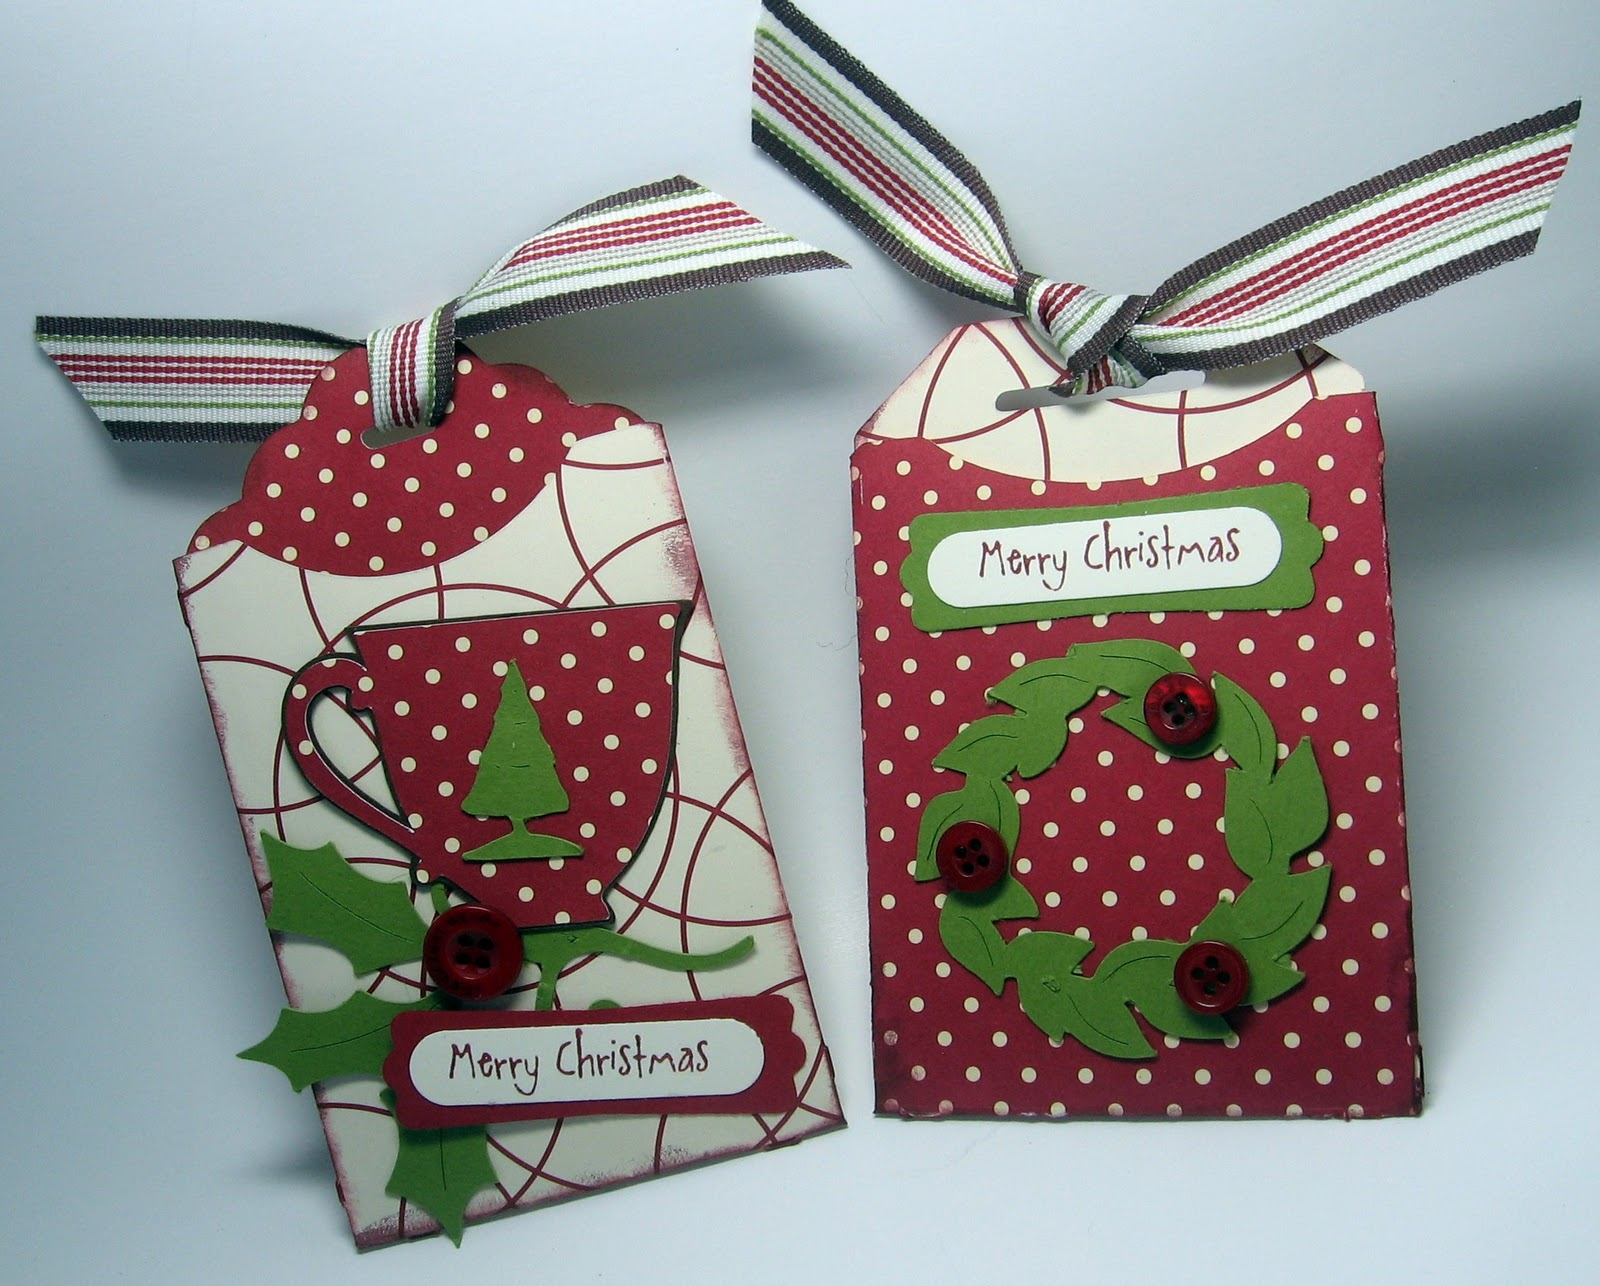 stamping up north with laurie: Cricut Christmas gift cards ...